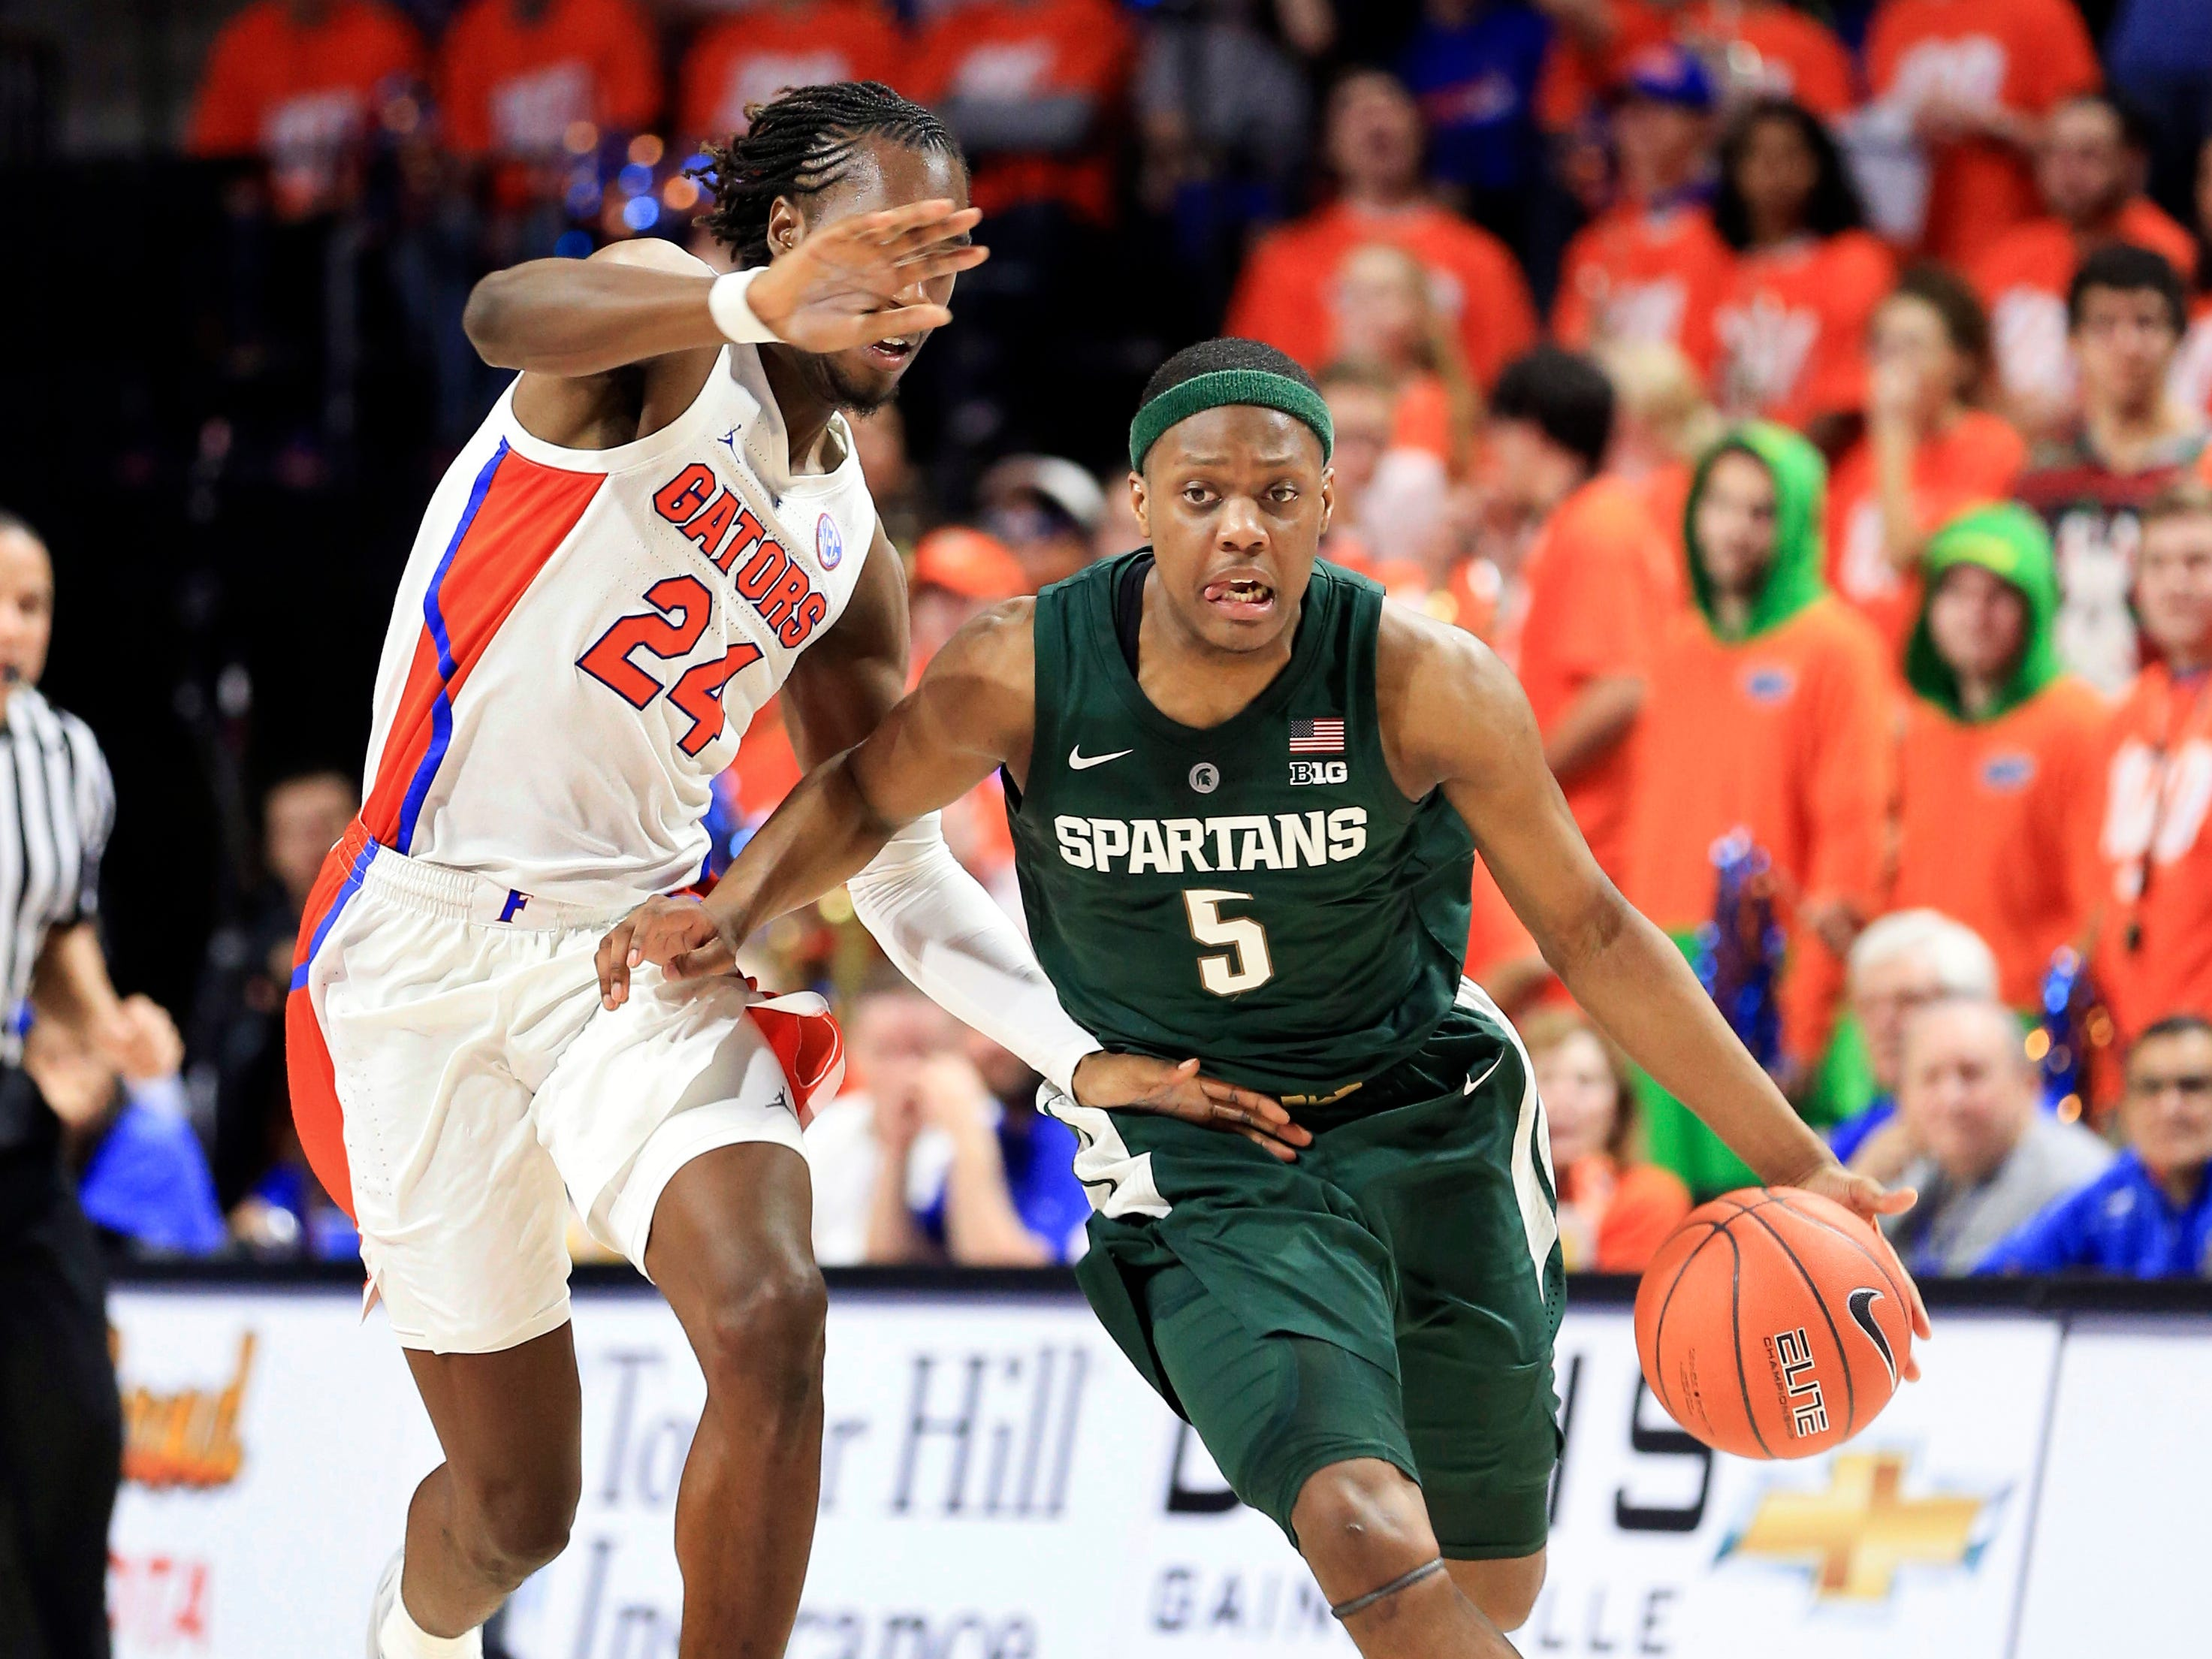 Michigan State guard Cassius Winston (5) dribbles up court past Florida guard Deaundrae Ballard (24) during the first half of an NCAA college basketball game Saturday, Dec. 8, 2018, in Gainesville, Fla.